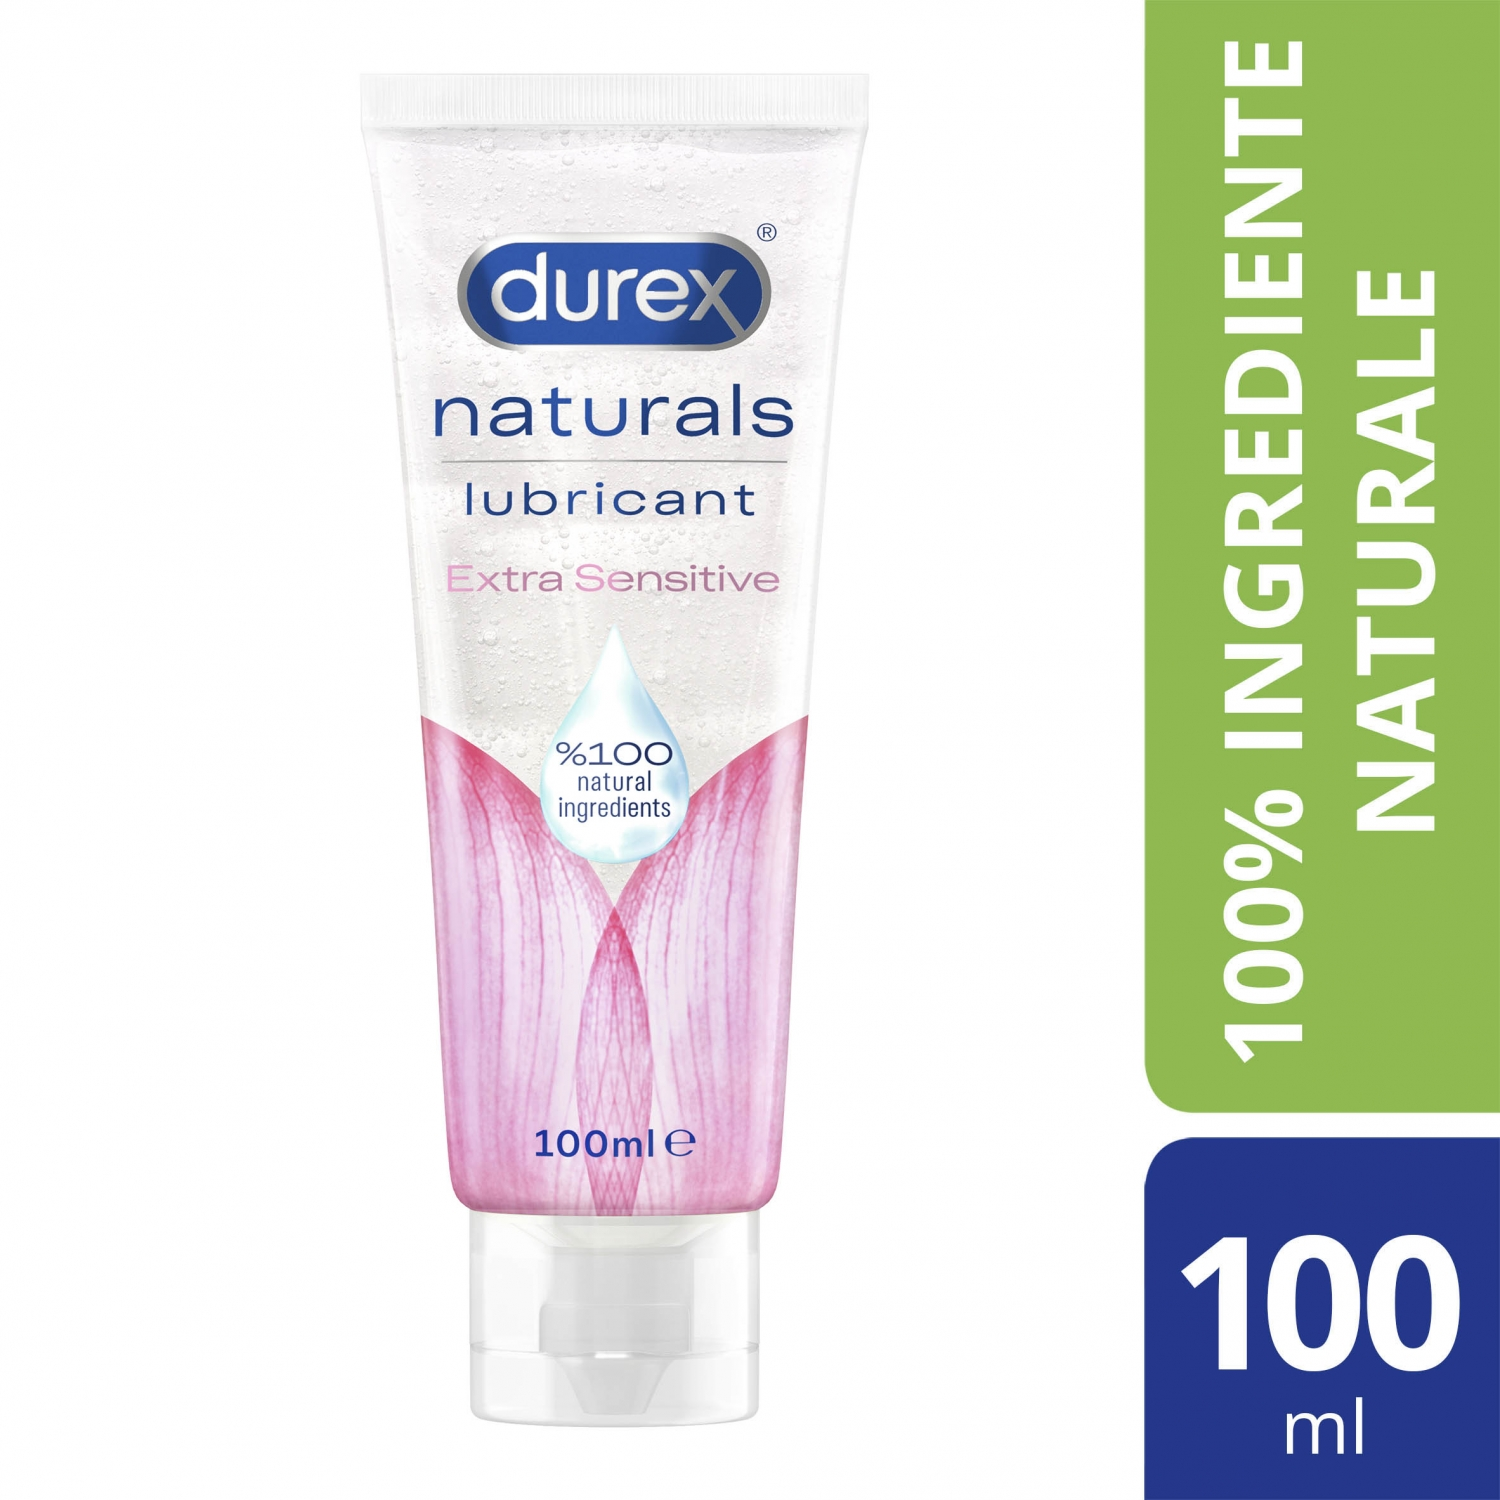 Lubrifiant Durex Naturals Extra Sensitive, 100 ml